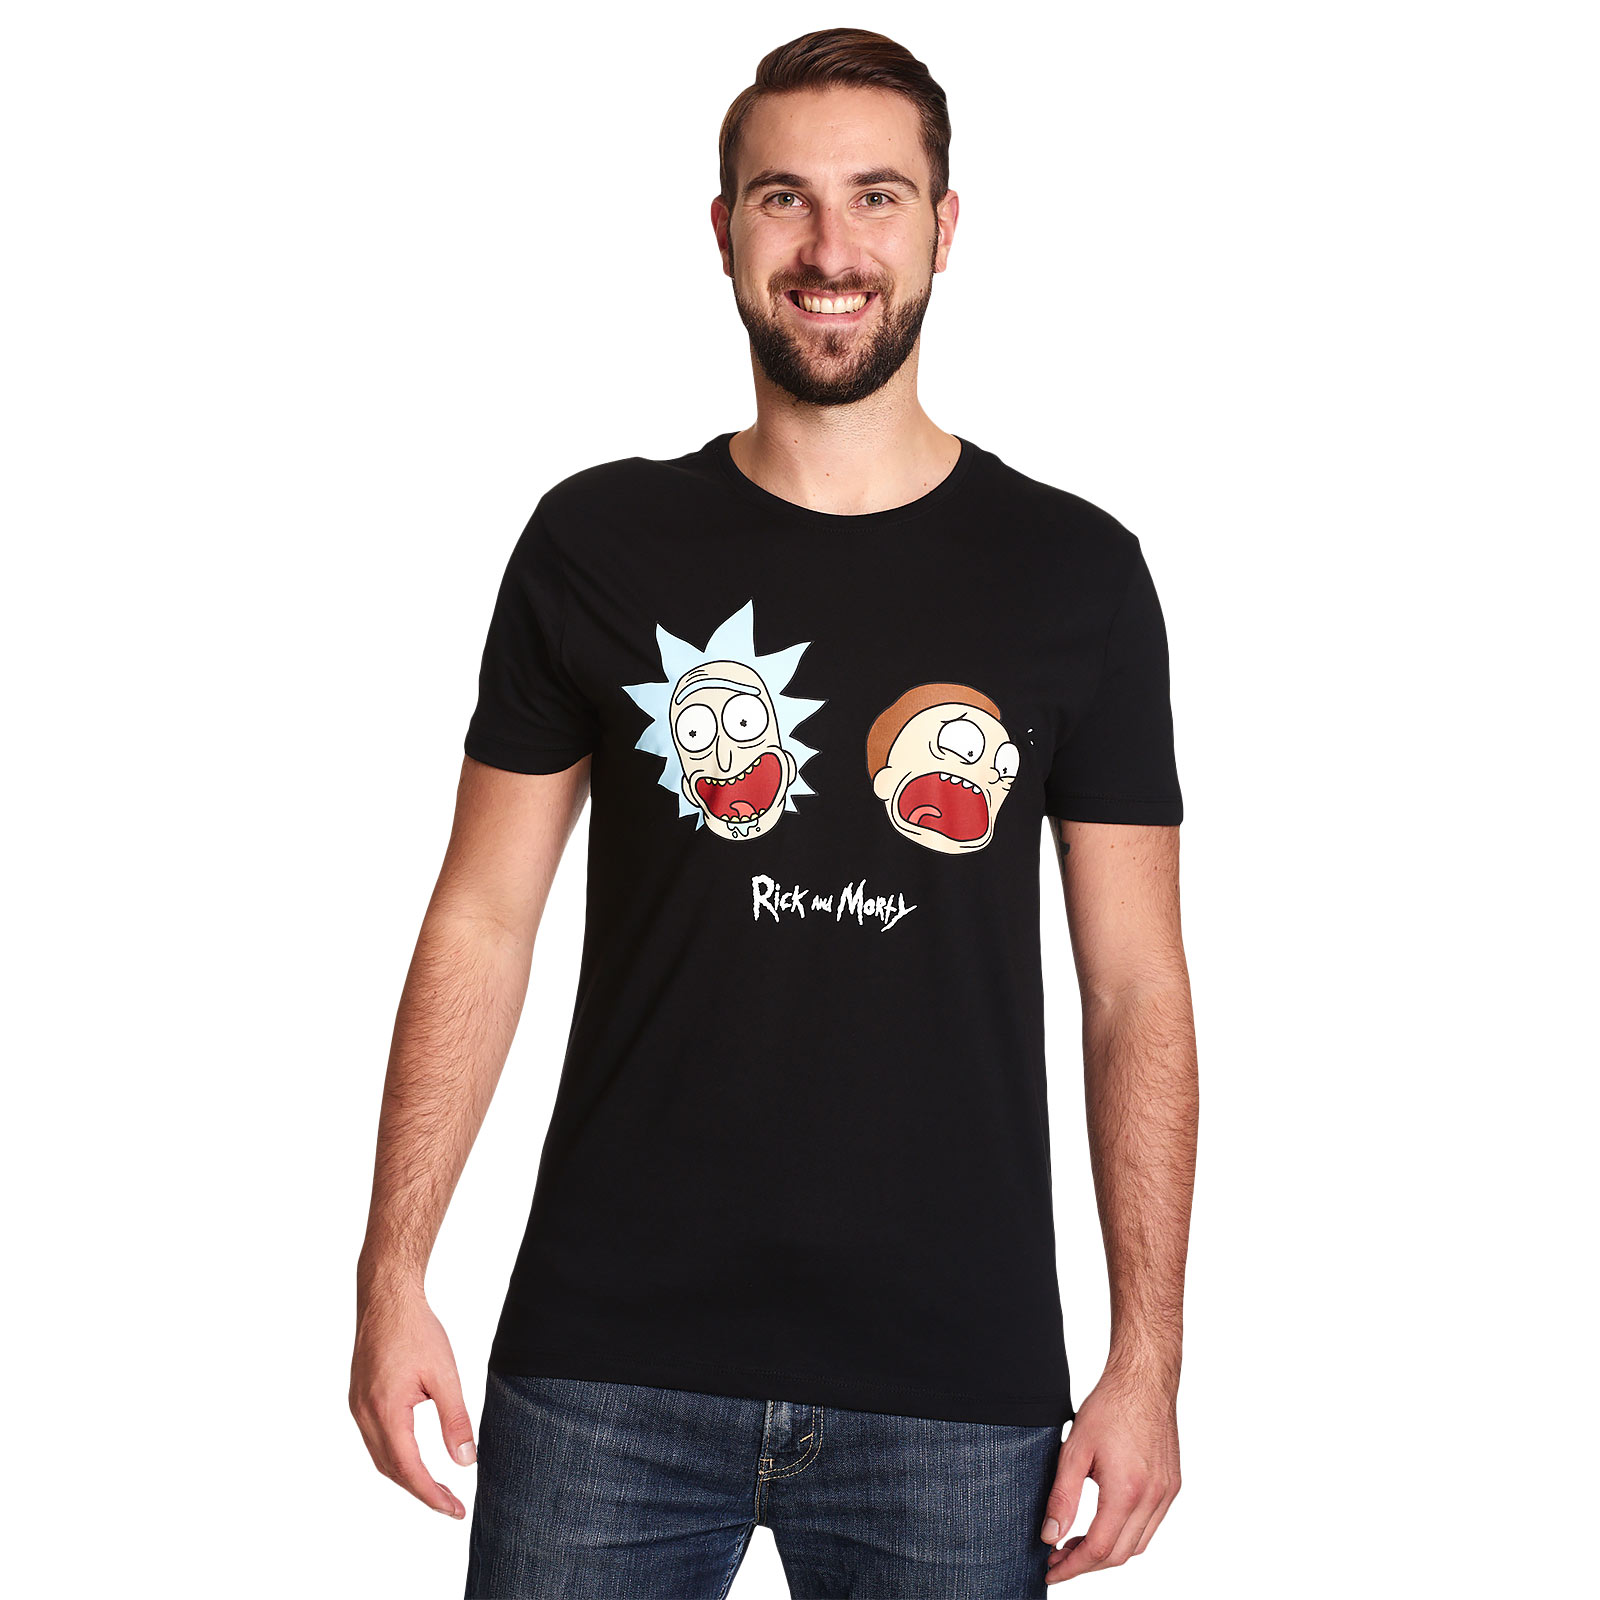 Rick and Morty - Crazy Faces Glow in the Dark T-Shirt